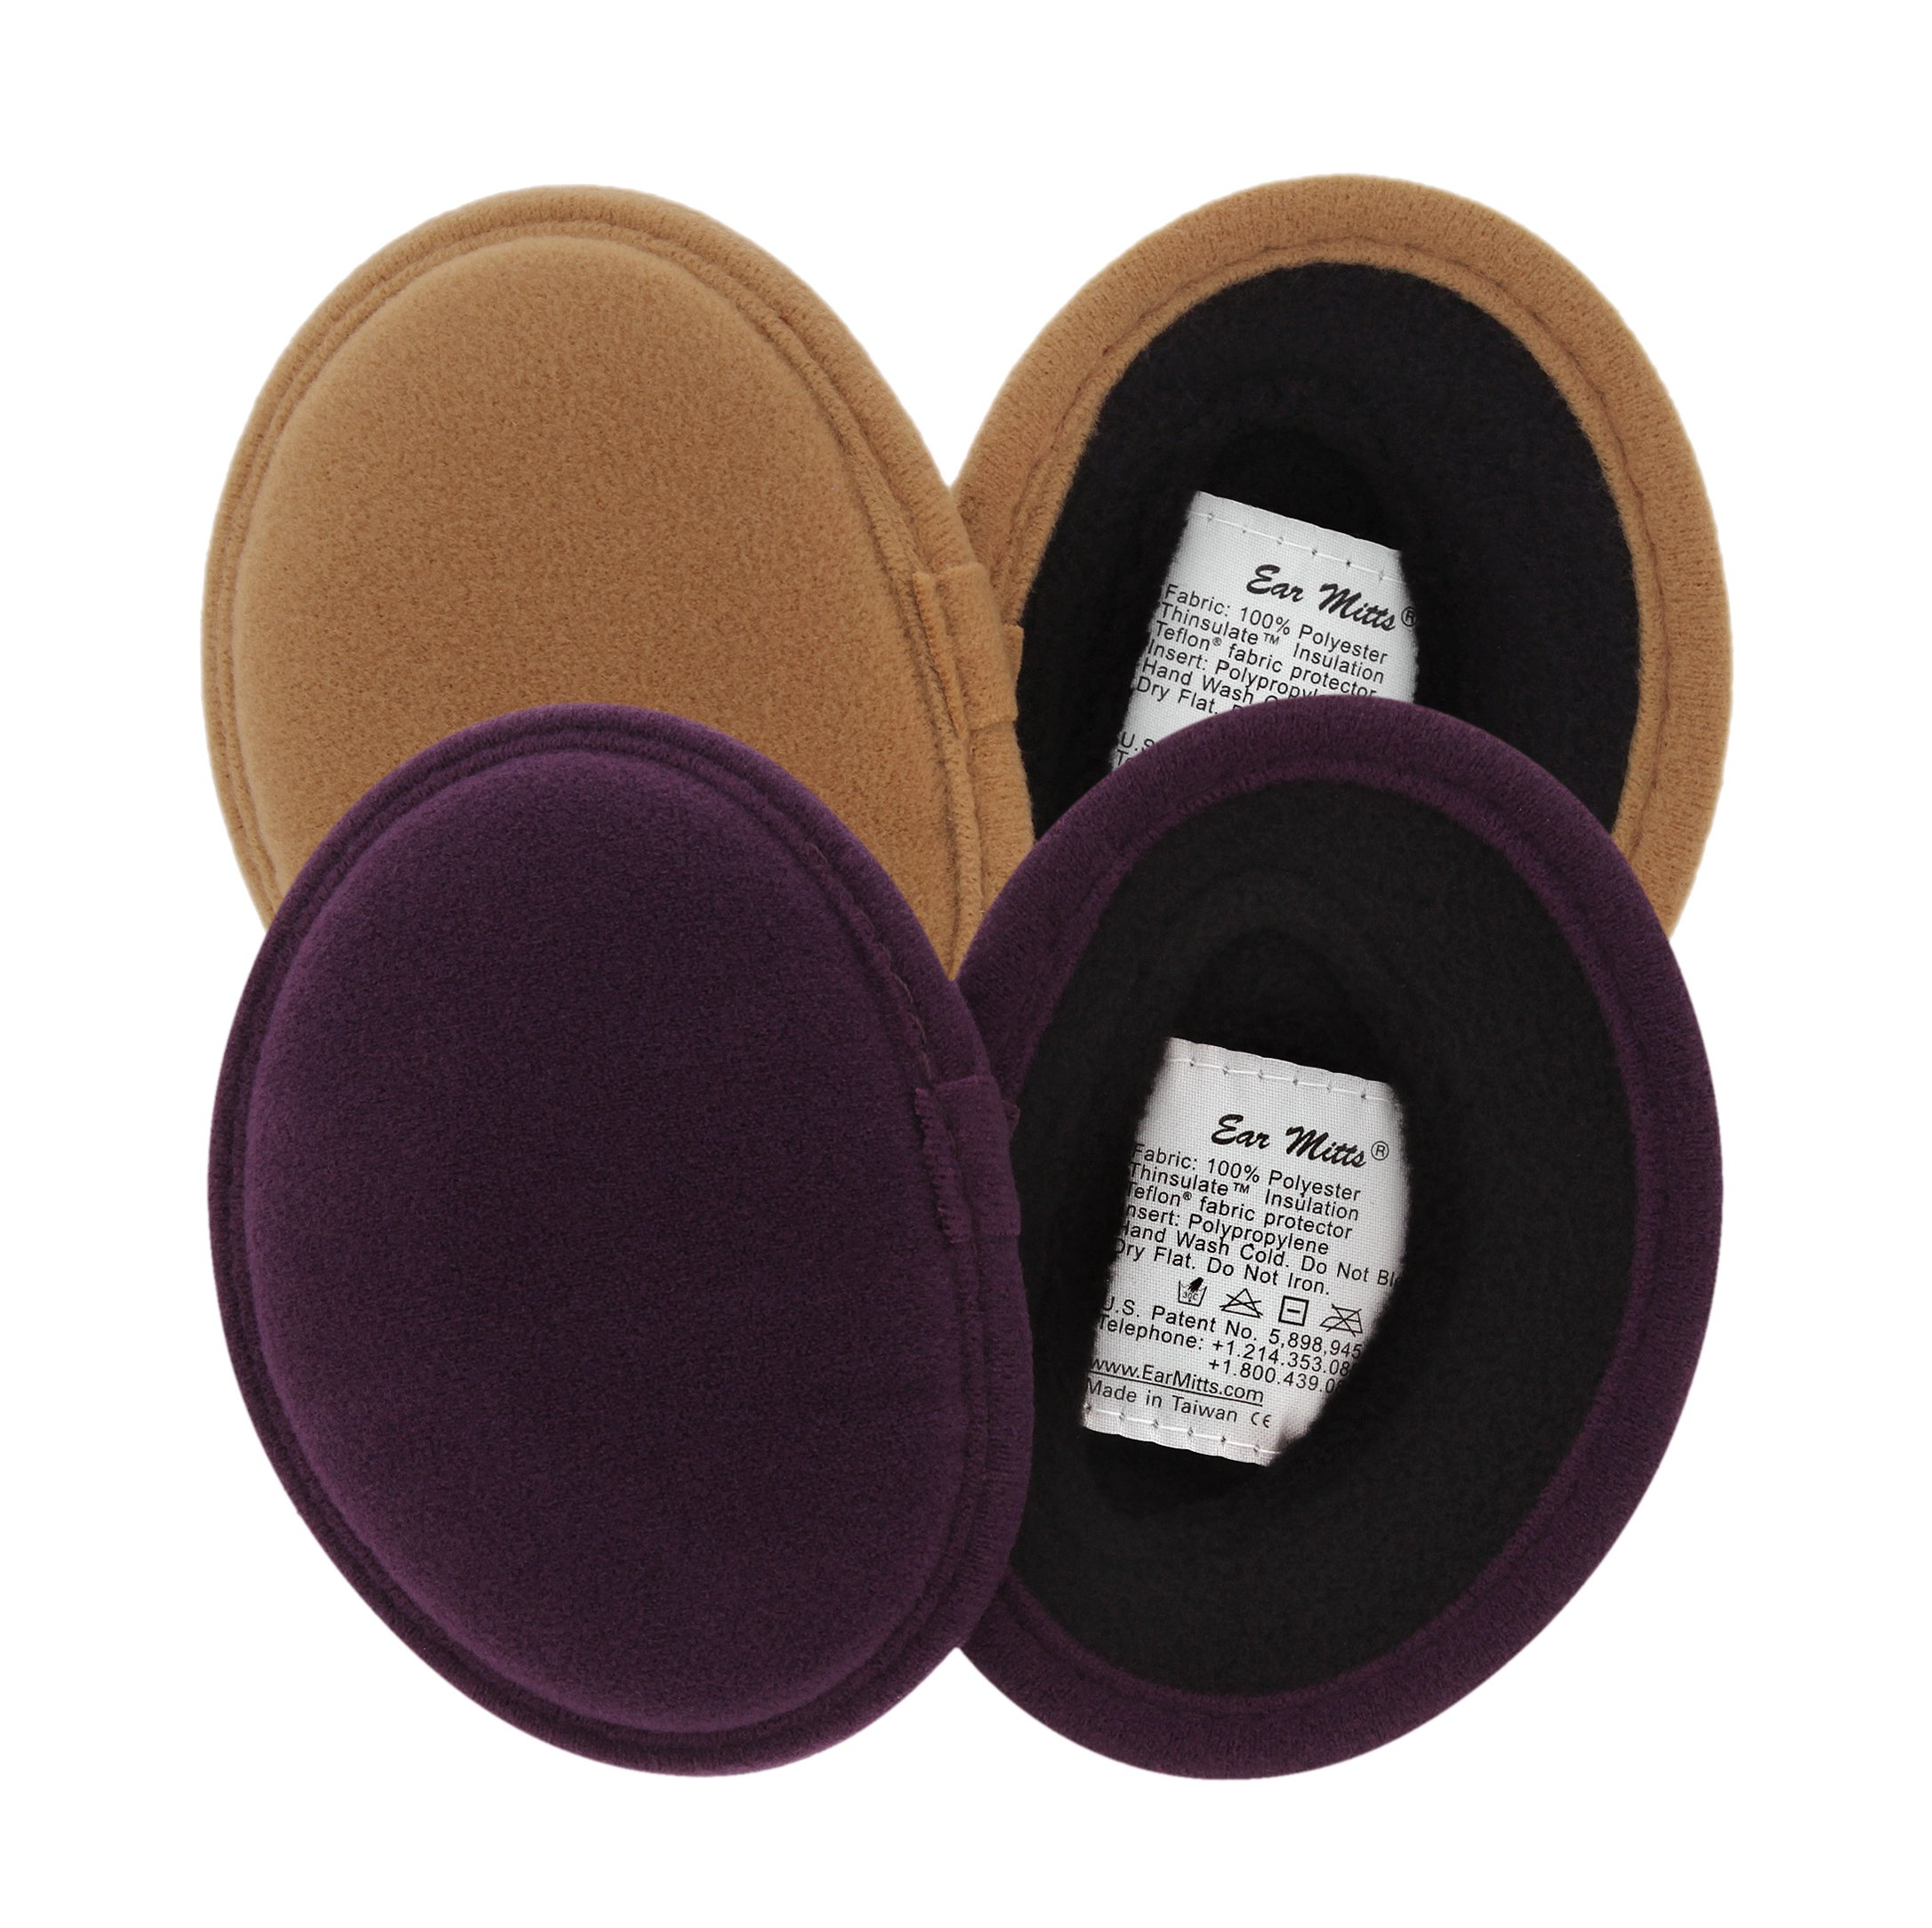 2 Pack Ear Mitts Faux Suede Bandless Ear Muffs Warmers, Camel & Eggplant, Regular